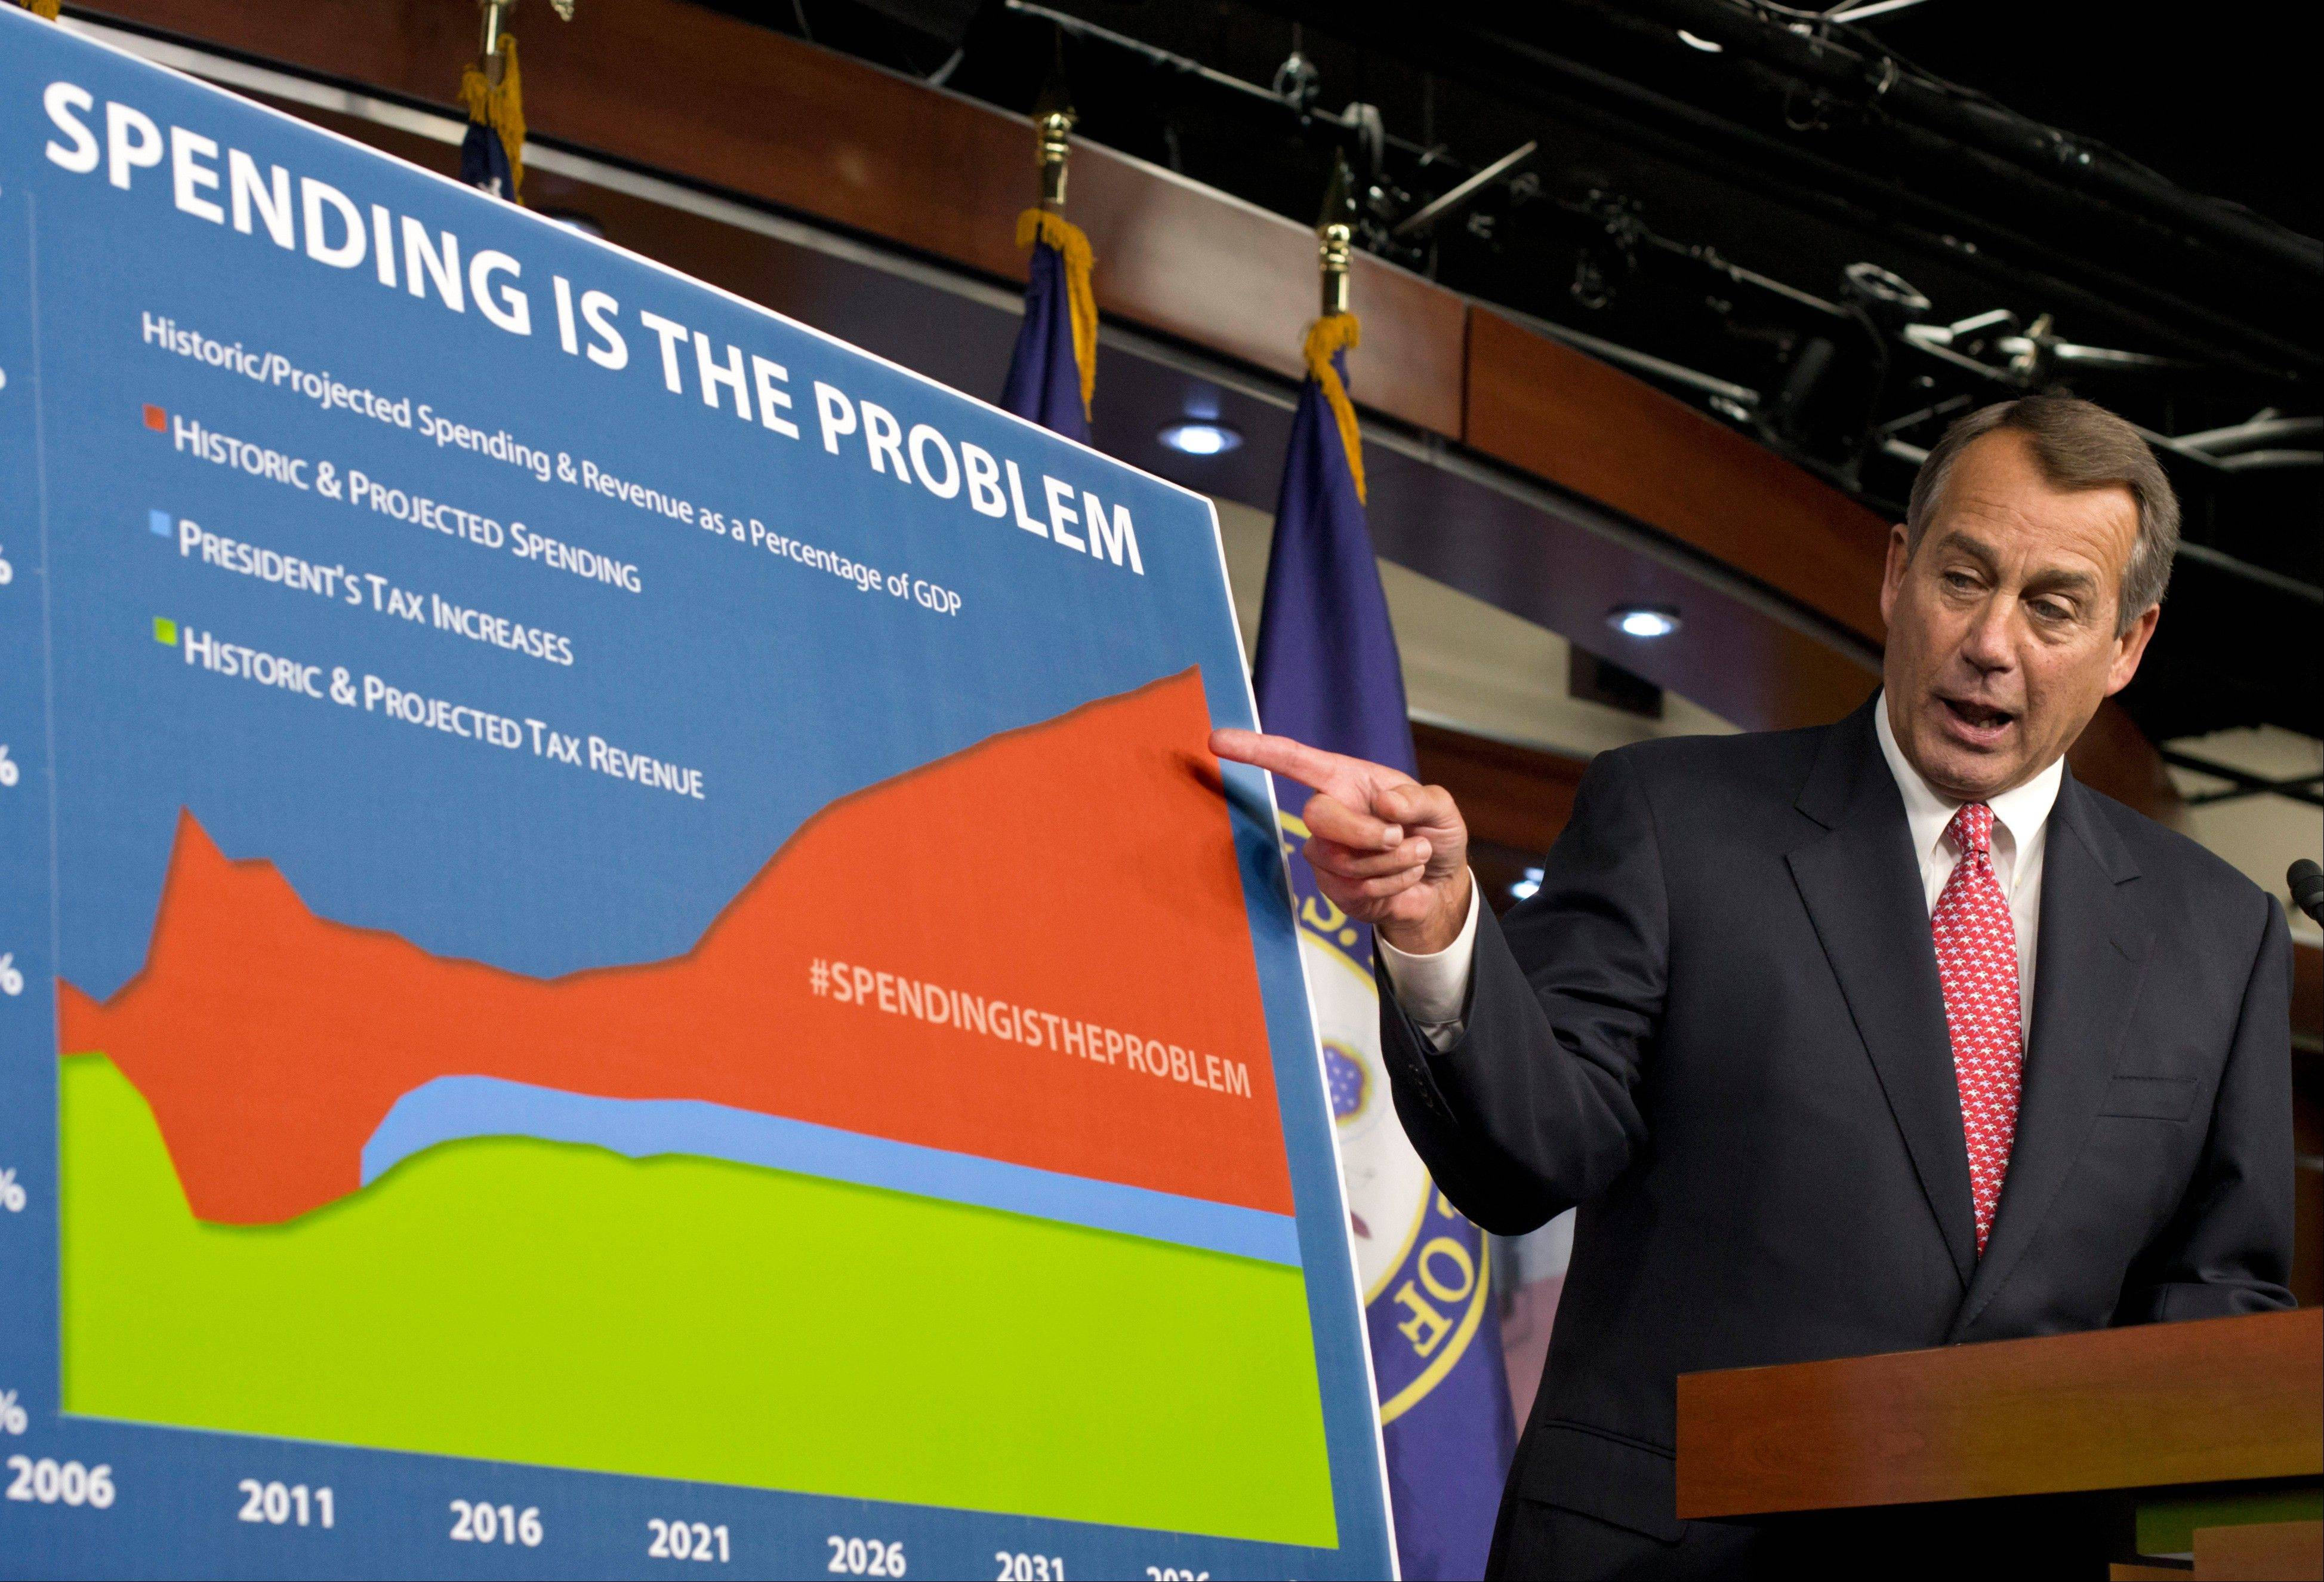 House Speaker John Boehner has offered to raise tax rates on household income above $1 million a year and lift the federal debt ceiling in exchange for containing entitlement program costs. While Obama wants higher rates for income above $250,000, Boehner�s offer marked movement because he has opposed increased rates for any income level.